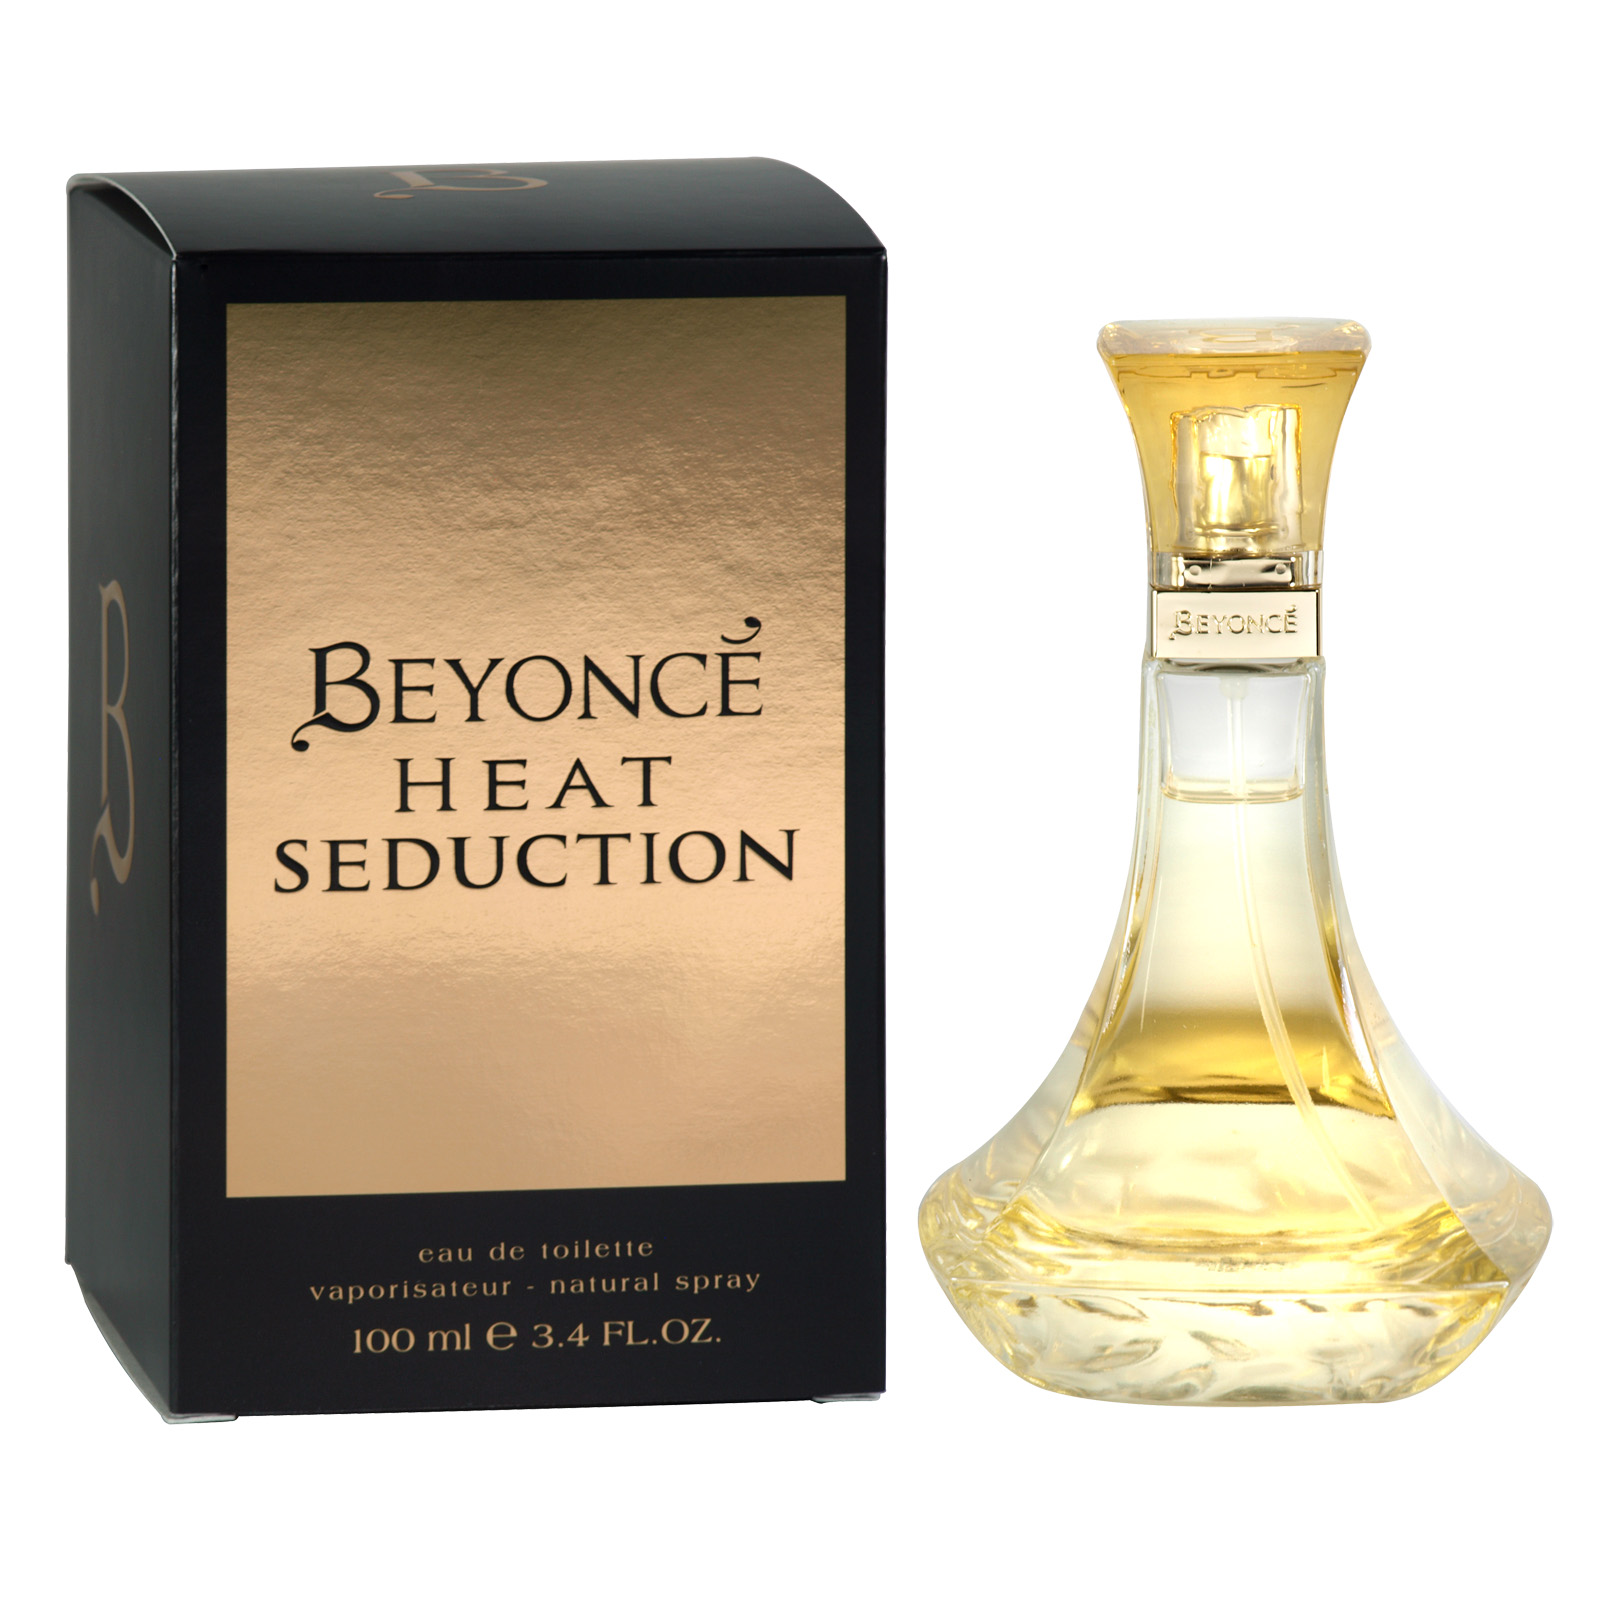 BEYONCE 100ML EDT SPRAY HEAT SEDUCTION